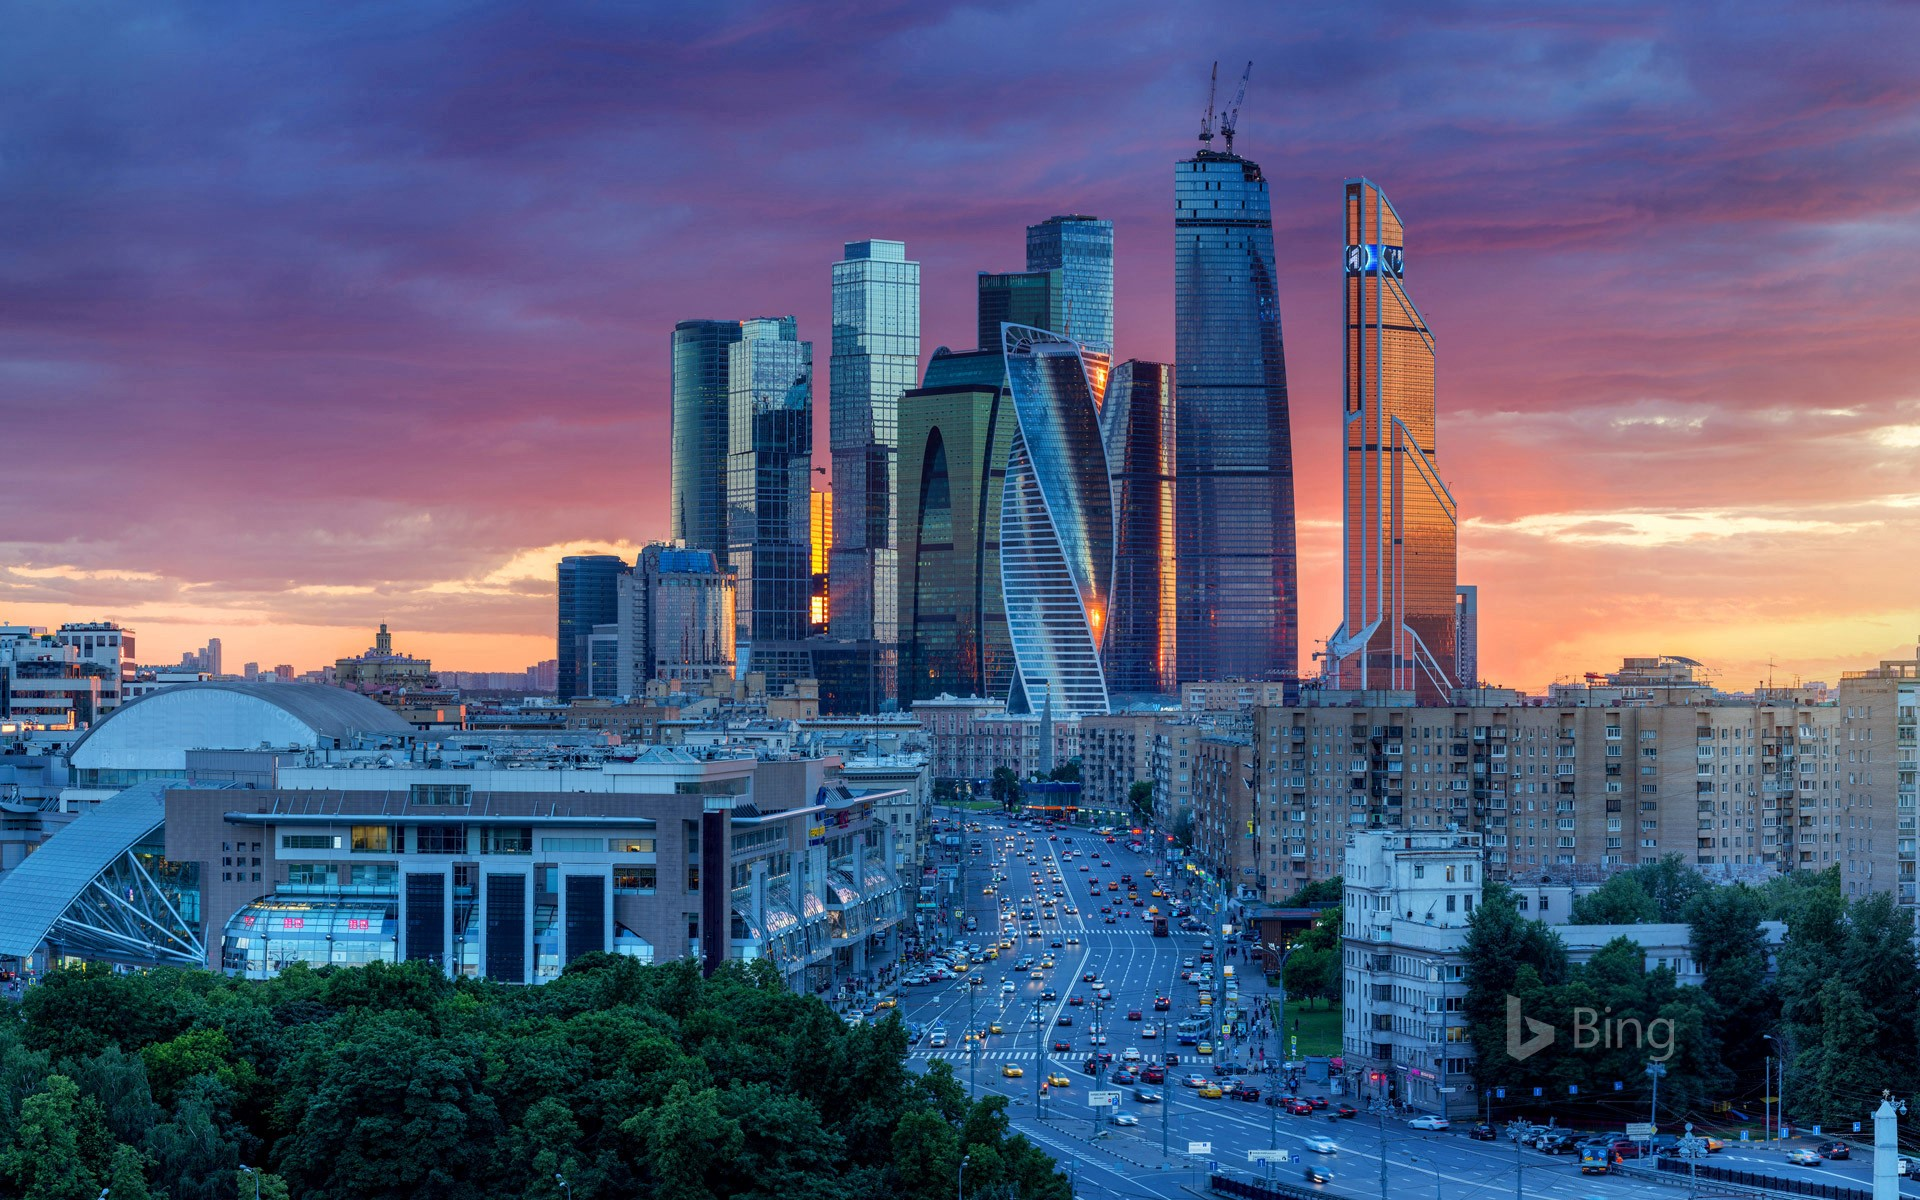 Moscow International Business Centre in Russia